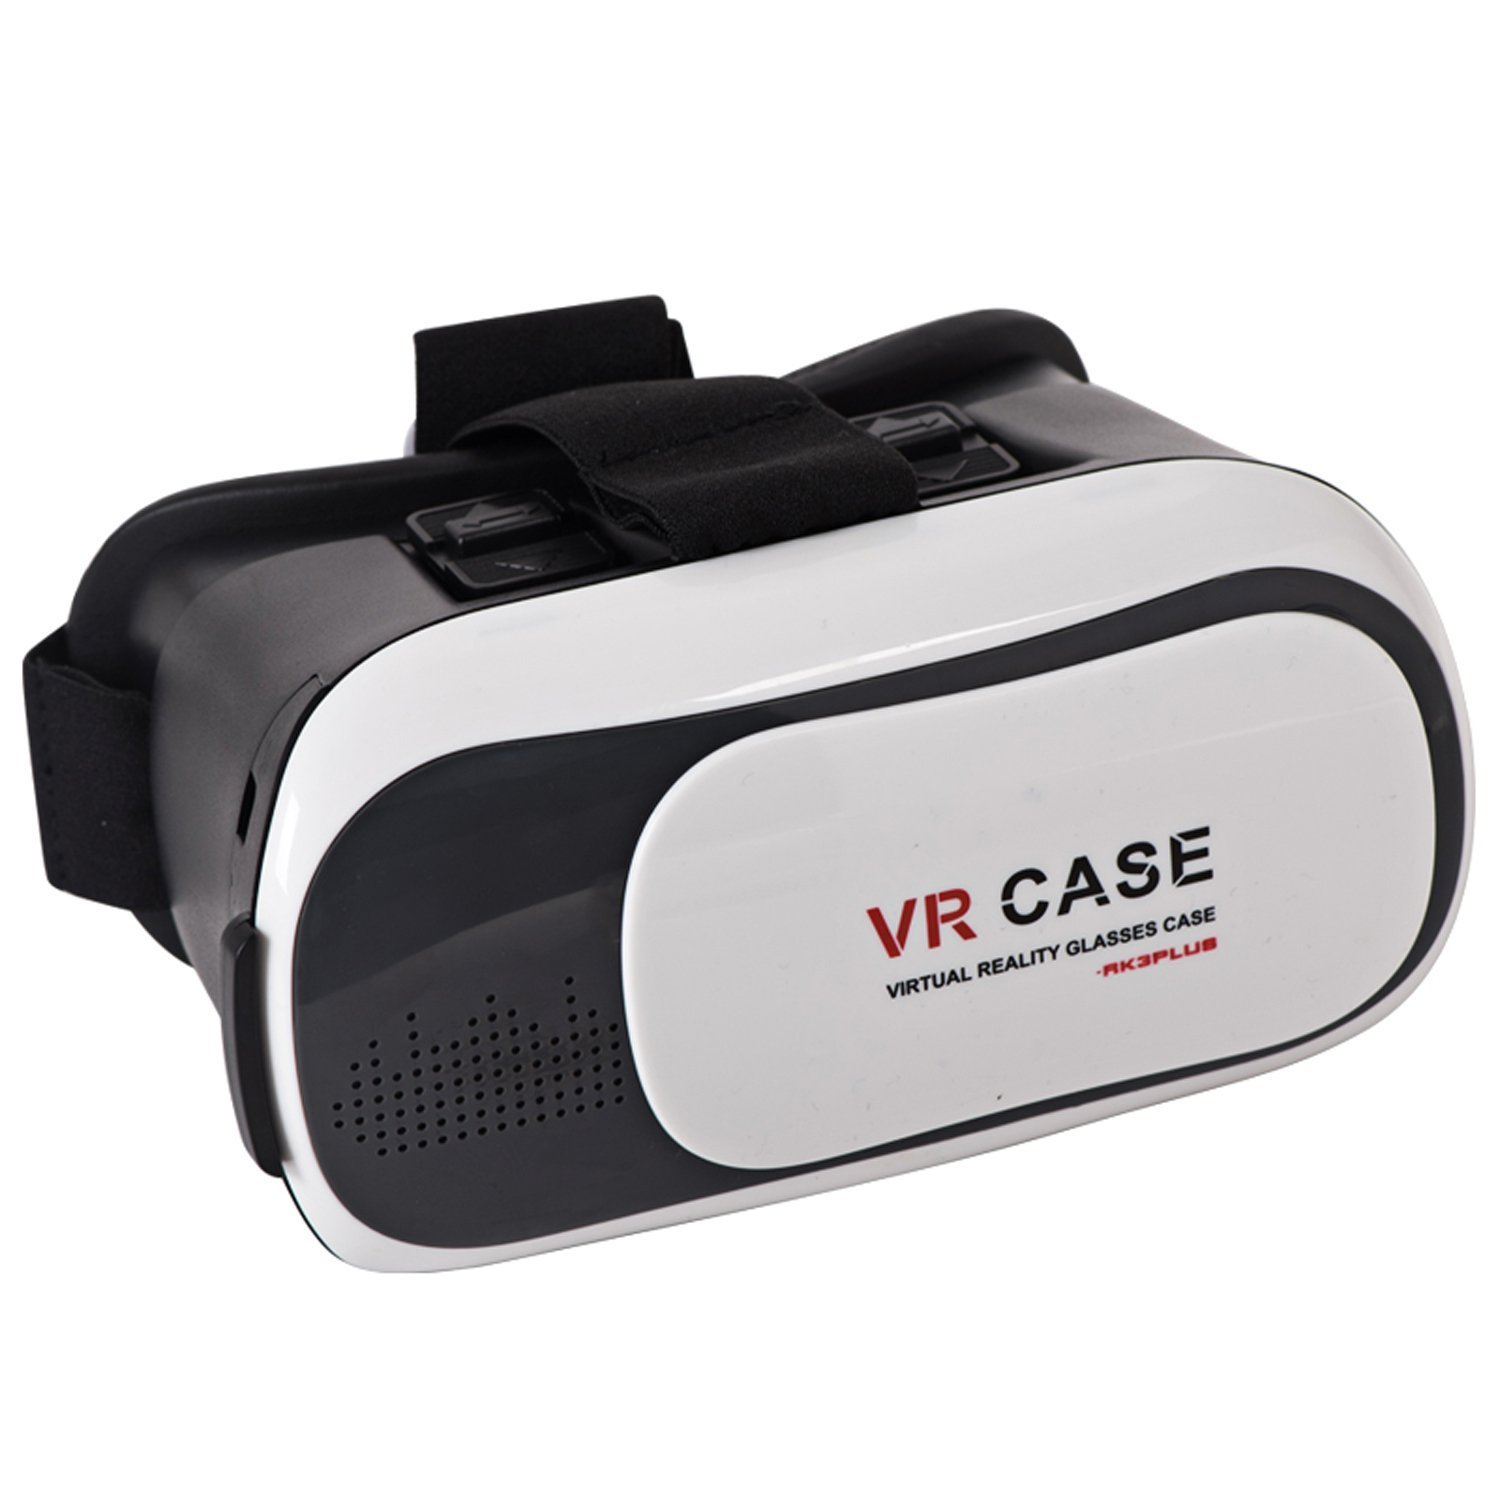 Virtual Reality 3D Headset VR Headset for 3D Movies,Video and Games,VR Glasses Suitable for LG HTC Motorola iPhone Samsung Note Galaxy Smartphones